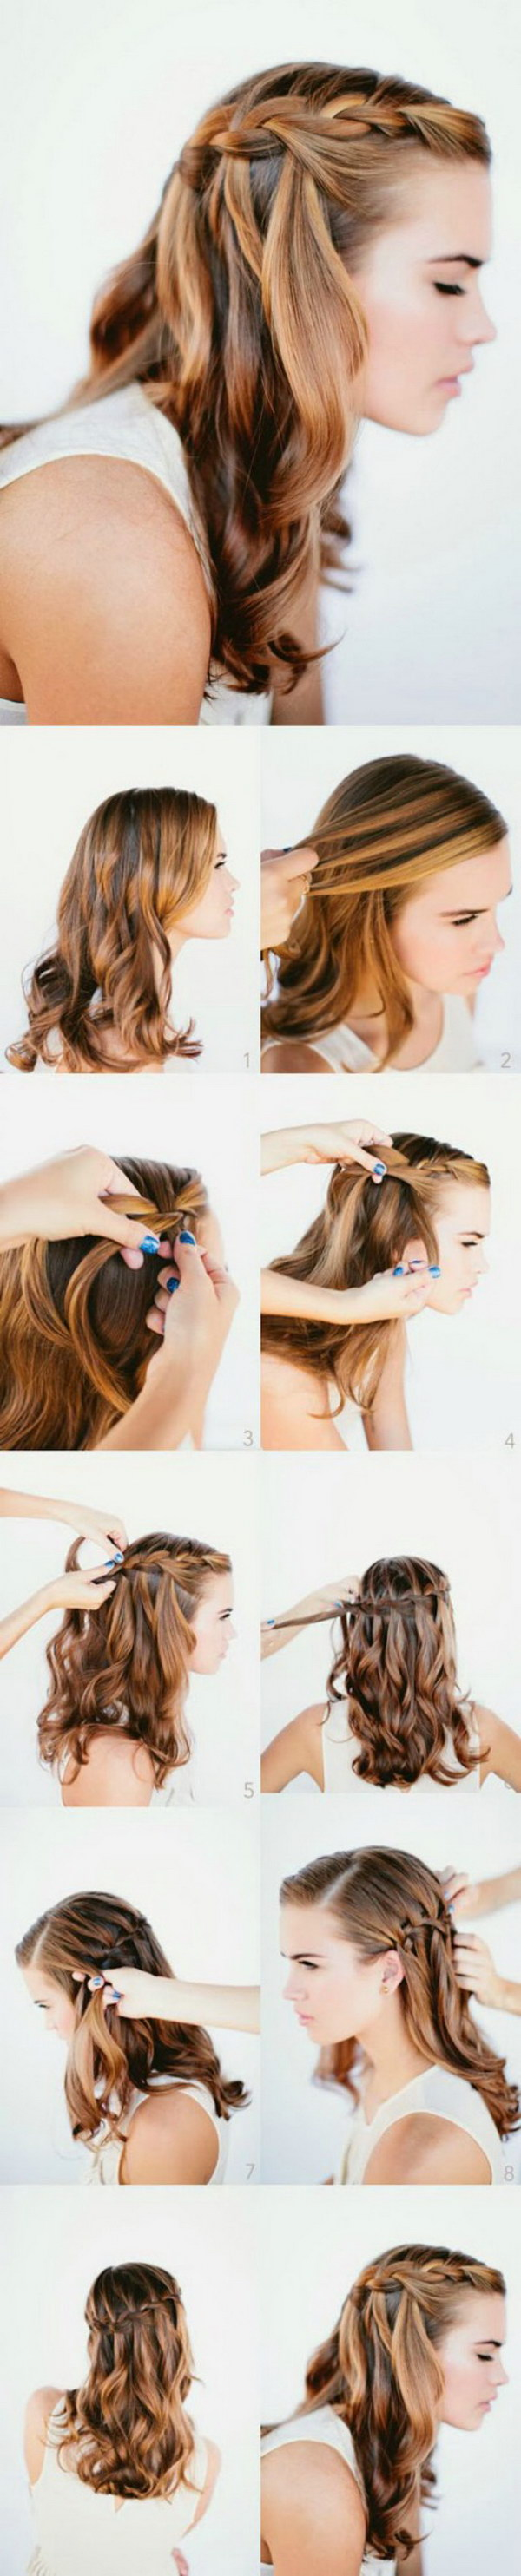 Waterfall Braid Wedding Hairstyles For Long Hair.